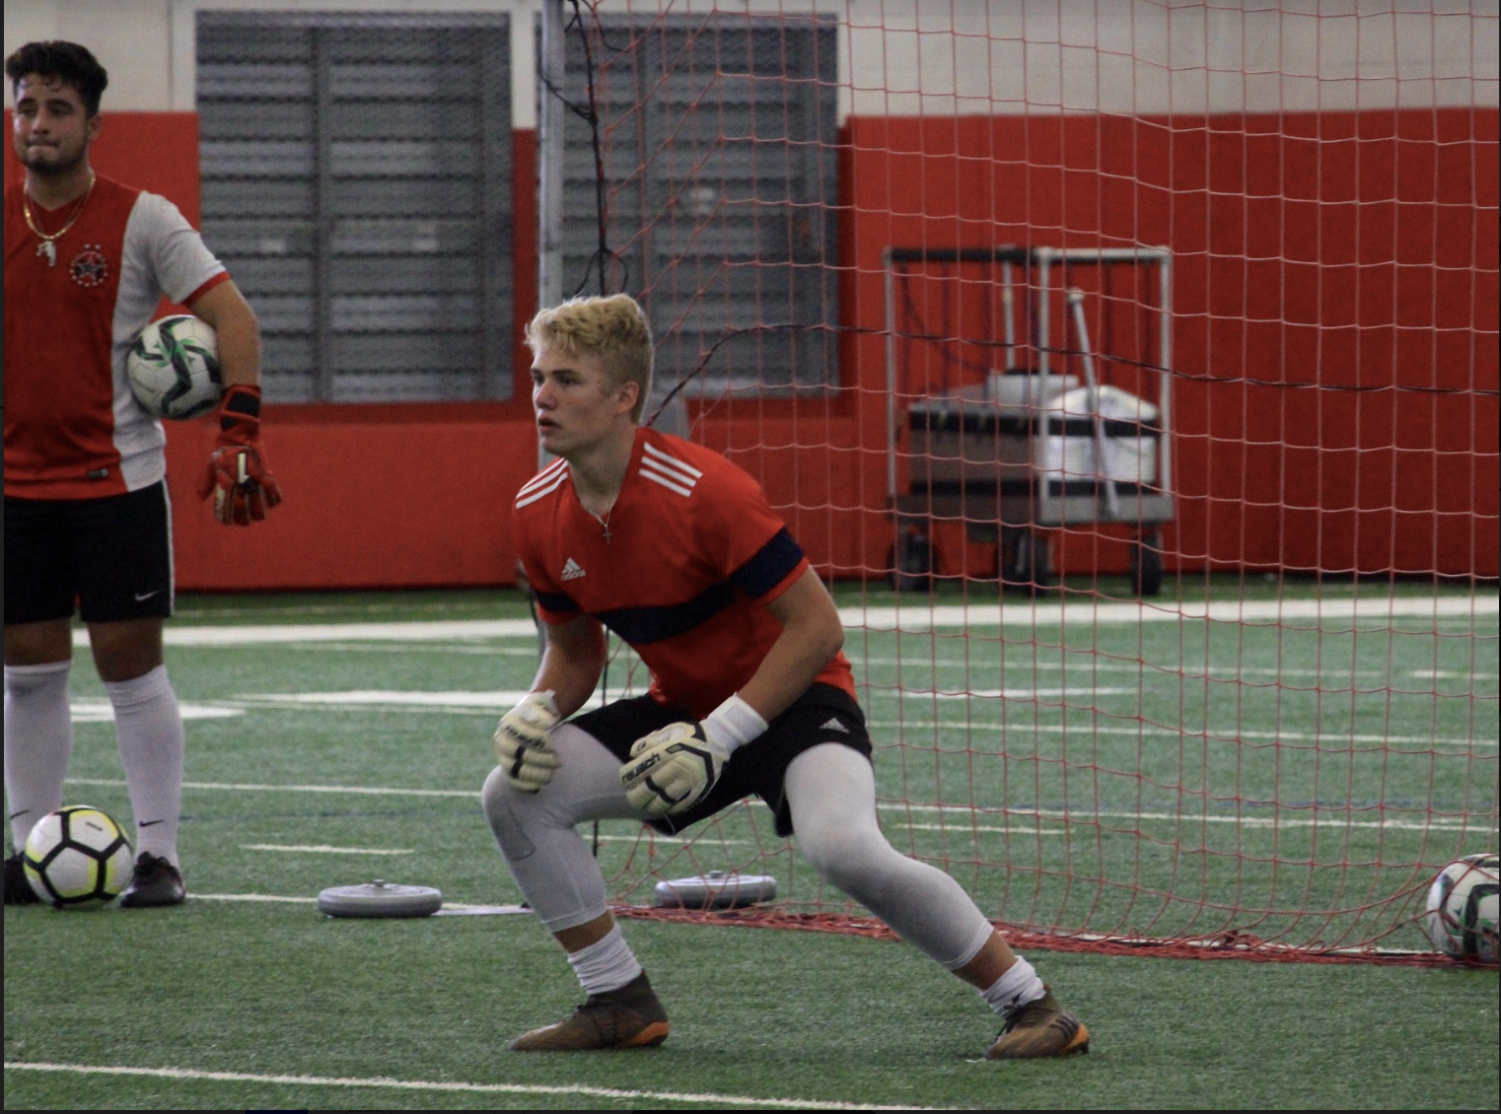 Coppell junior goalkeeper Tommi Penttinen, a foreign exchange student from Finland, practices with his teammates on Friday in the CHS fieldhouse. Penttinen is staying with a host family here in Coppell for a year with a program called Sun Tiimi, which is the local version of a program called International Experience.